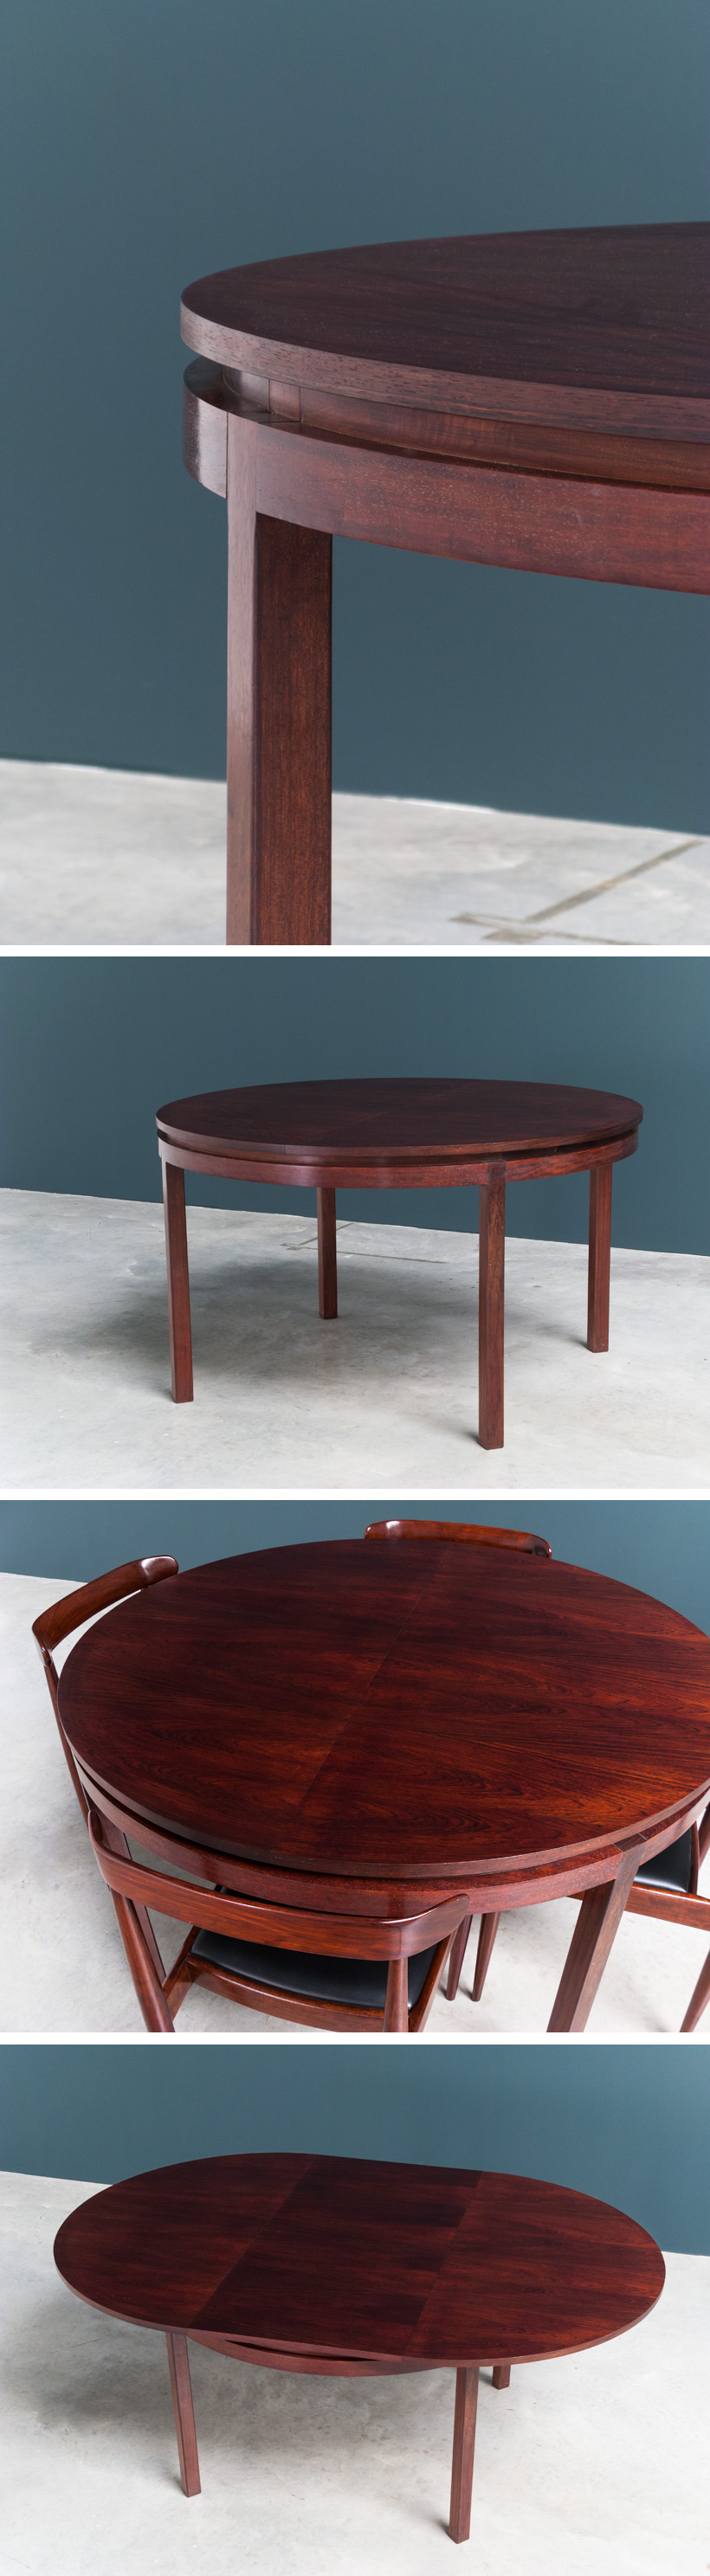 Alfred Hendrickx dinning table model 600 Large